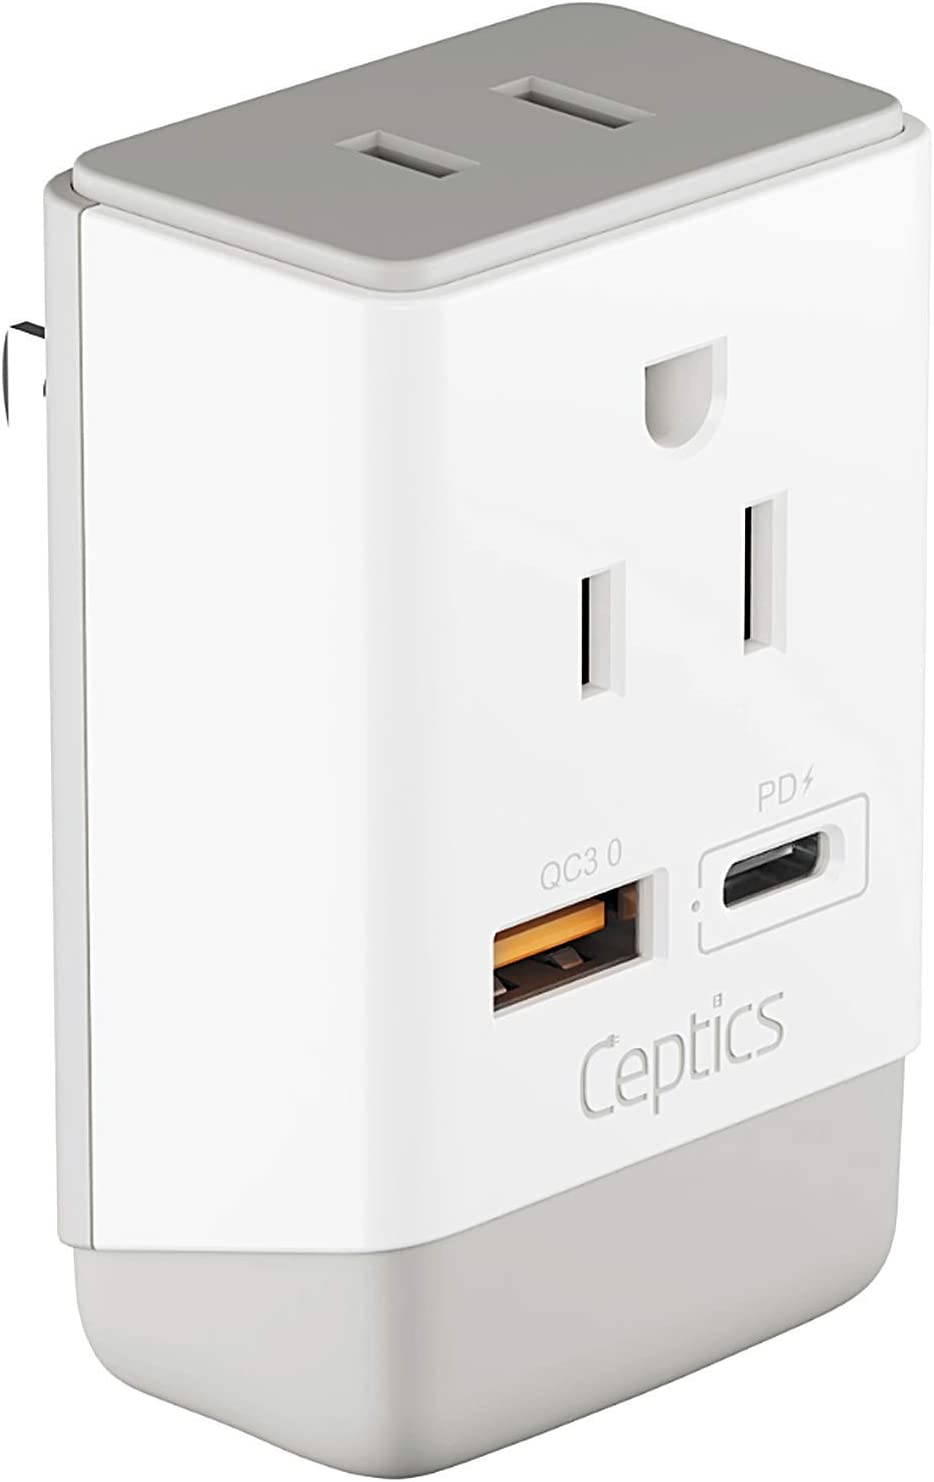 Japan, Philippines Power Travel Plug Adapter, QC 3.0 & PD by Ceptics, Safe Dual USB & USB-C - 2 USA Socket Compact & Powerful - USA 3 Pin Polarized to 2 Prong Unpolarized - Type A - AP-6 Fast Charging